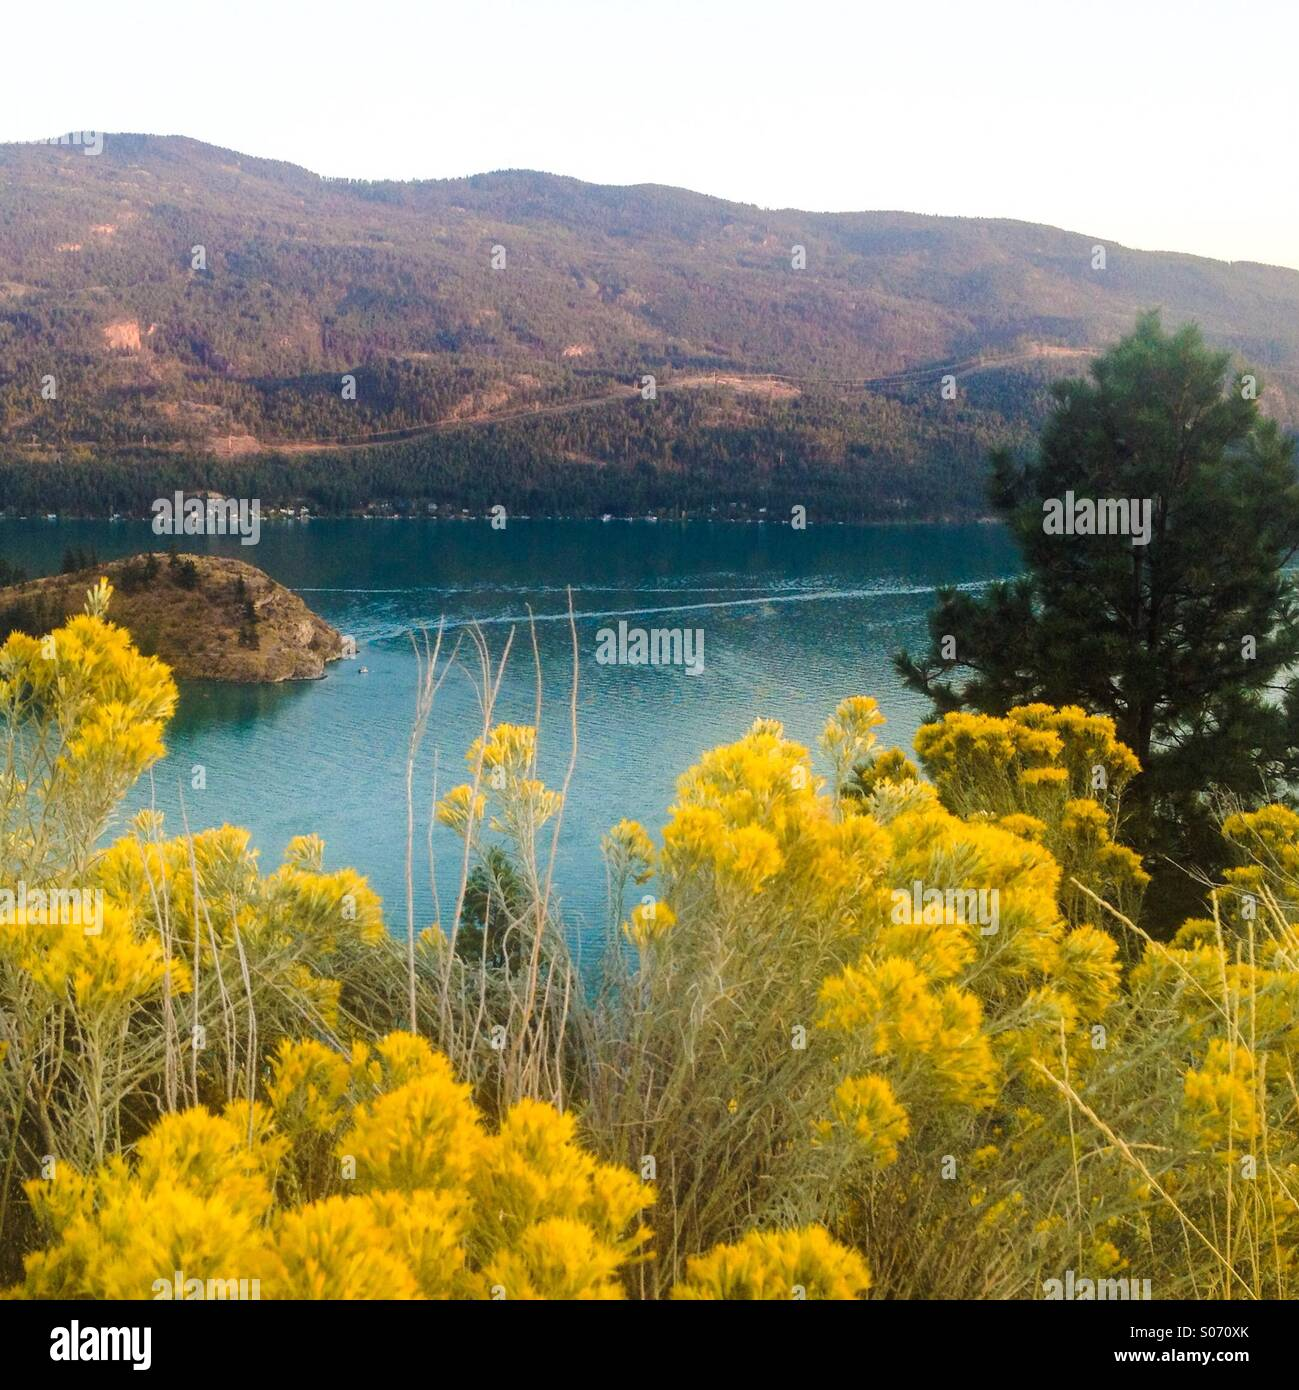 Kalamalka Lake's infamous blue waters reflect fabulously against the yellow flowers in the foreground. - Stock Image